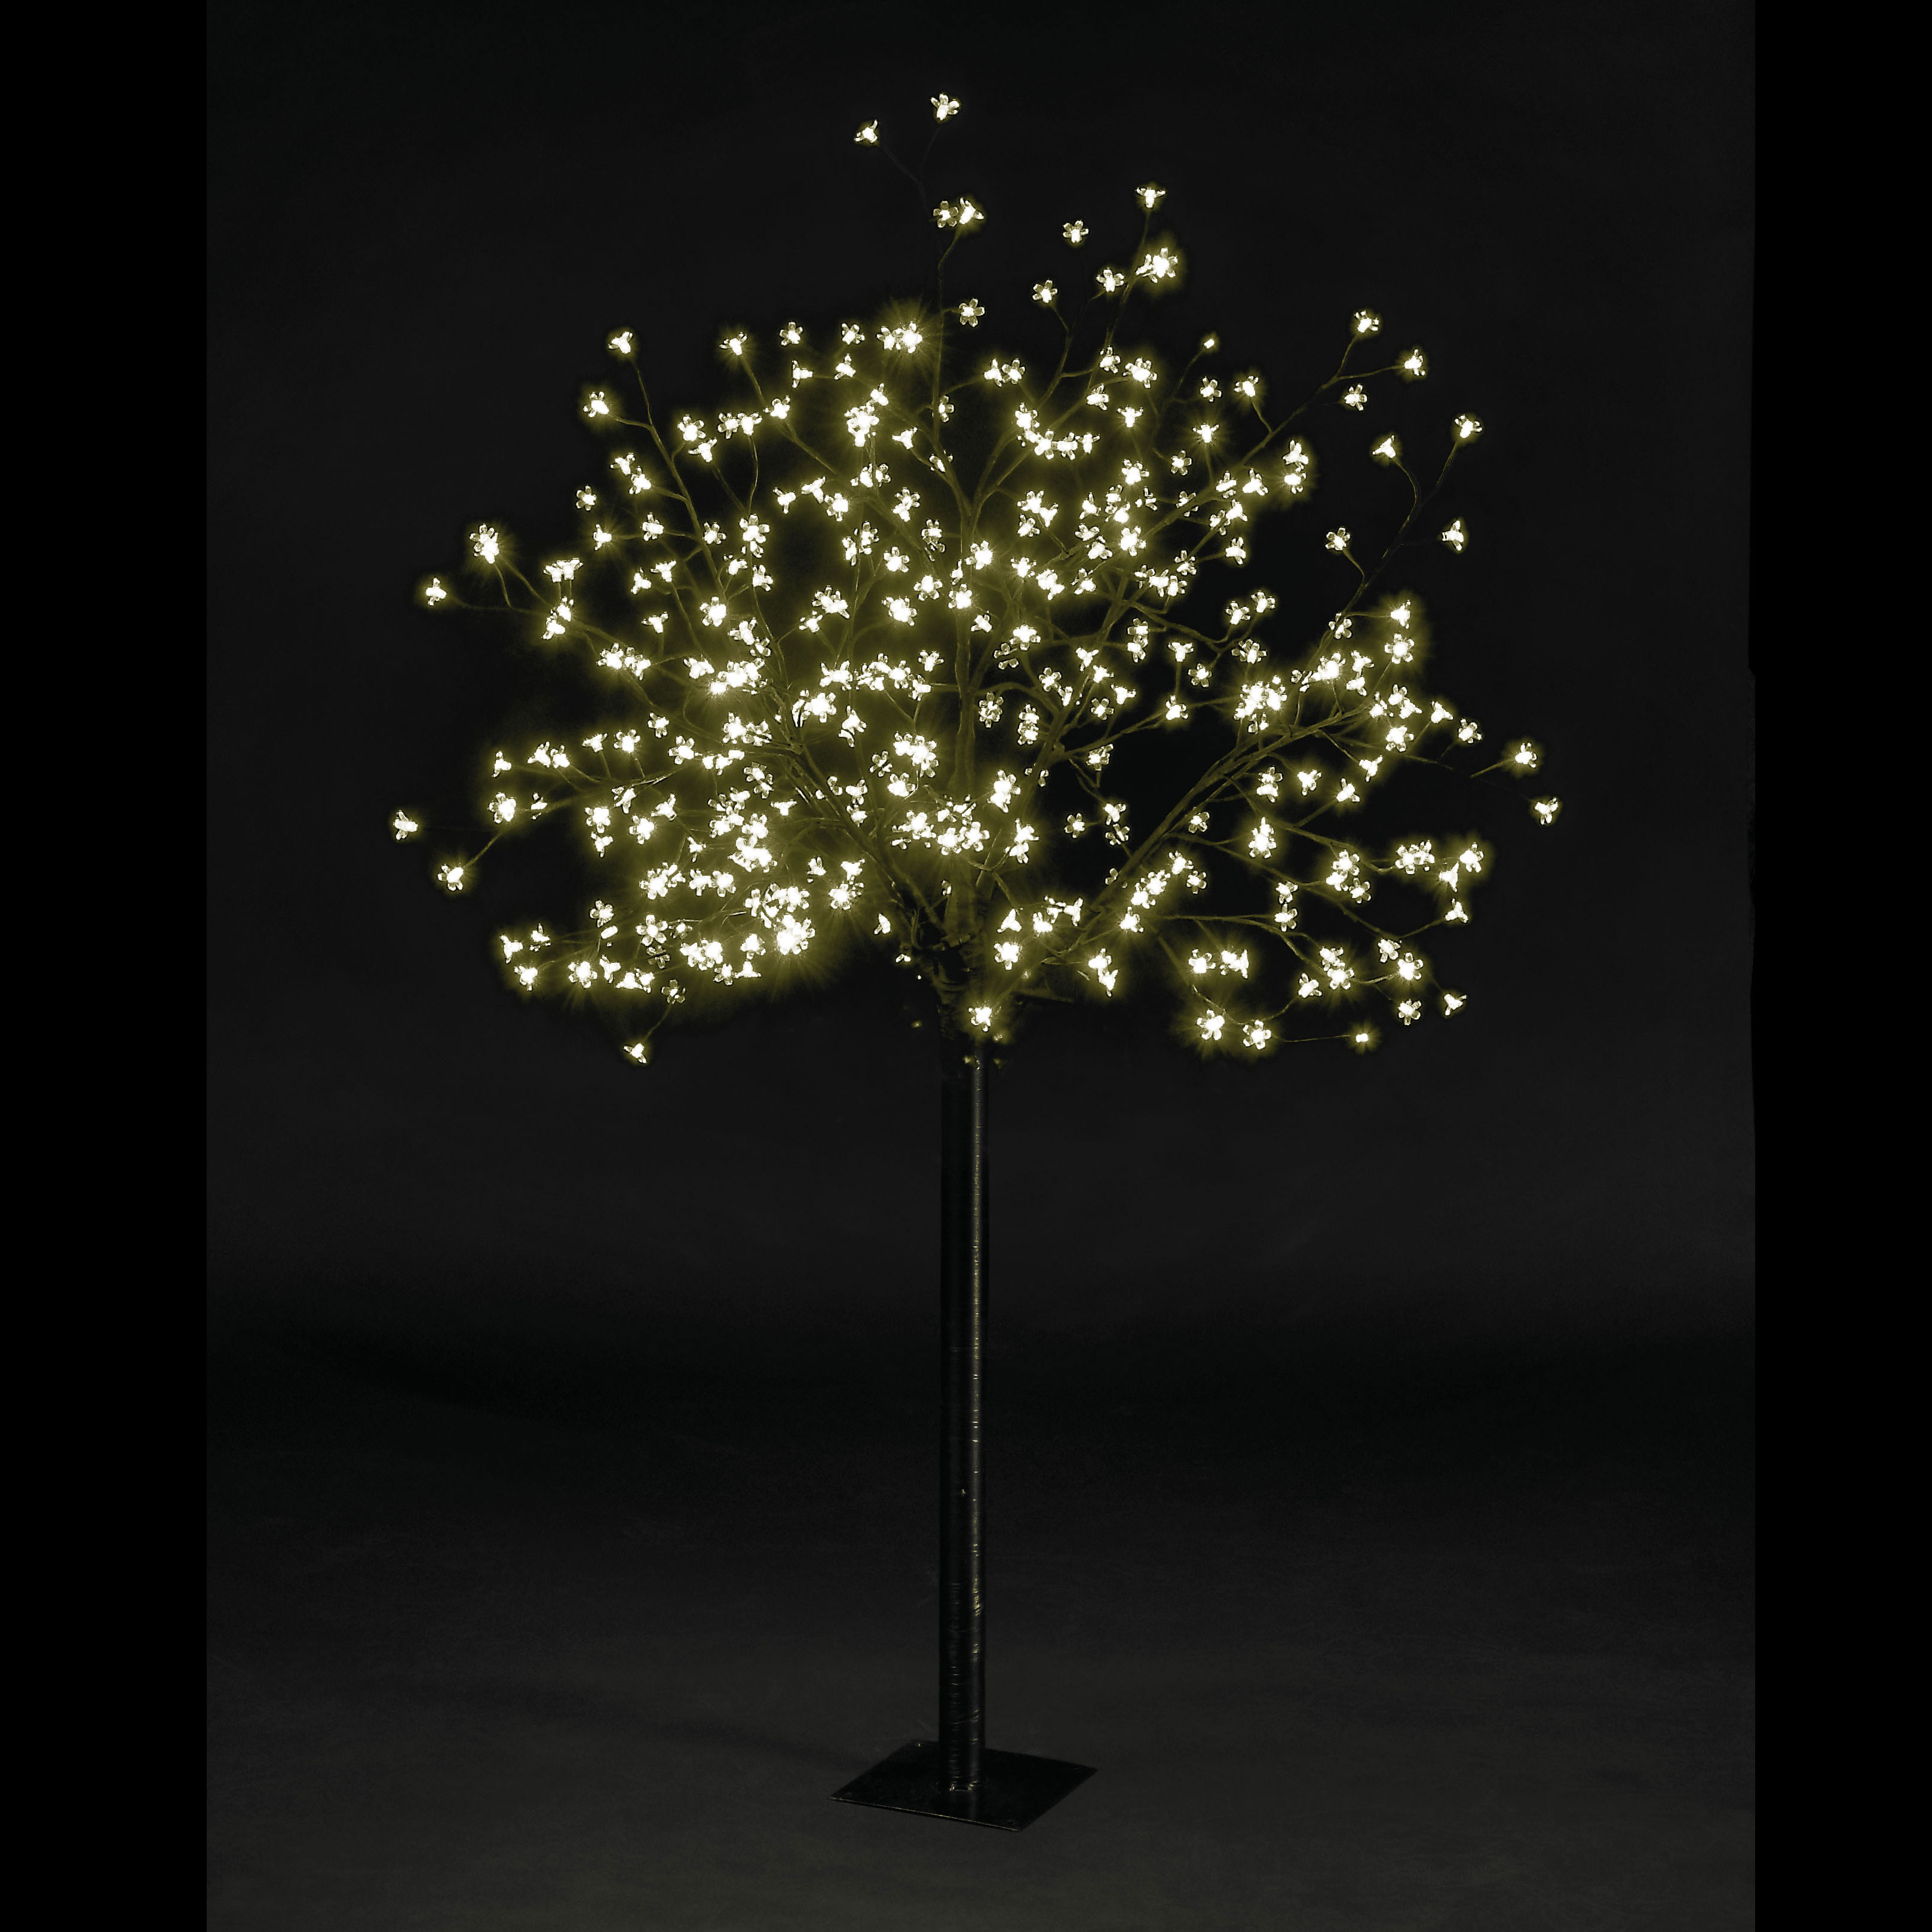 5ft Multi-Function Cherry Blossom Tree with 200 Warm White LEDs